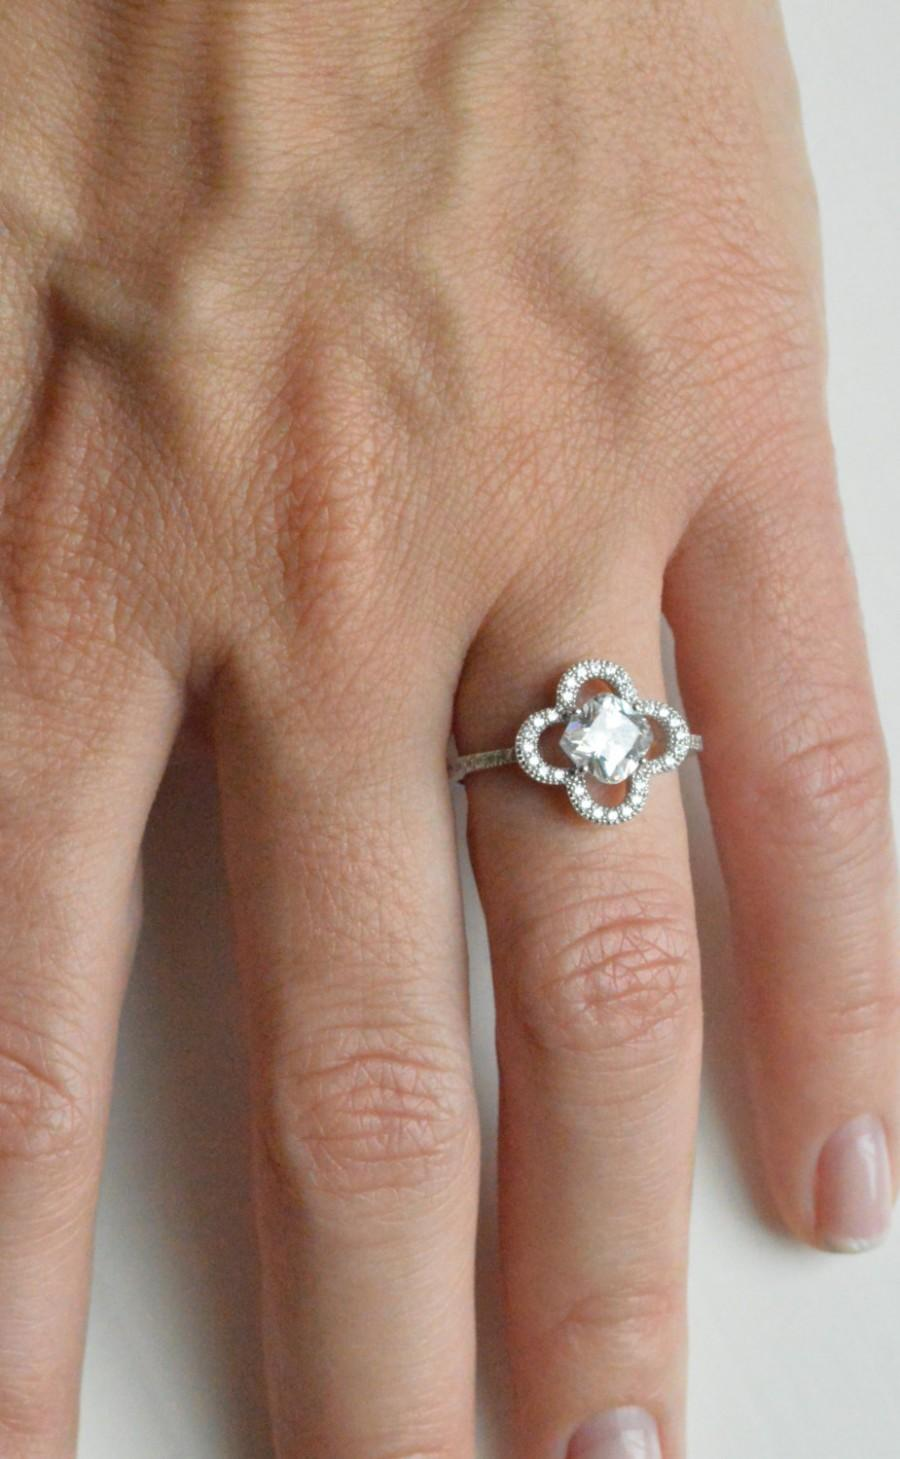 Mariage - 14k Lucky Charm Engagement Ring - 1.5ct Halo Engagement Ring - Art Deco Ring - 14k Clover Ring - 14k Promise Ring